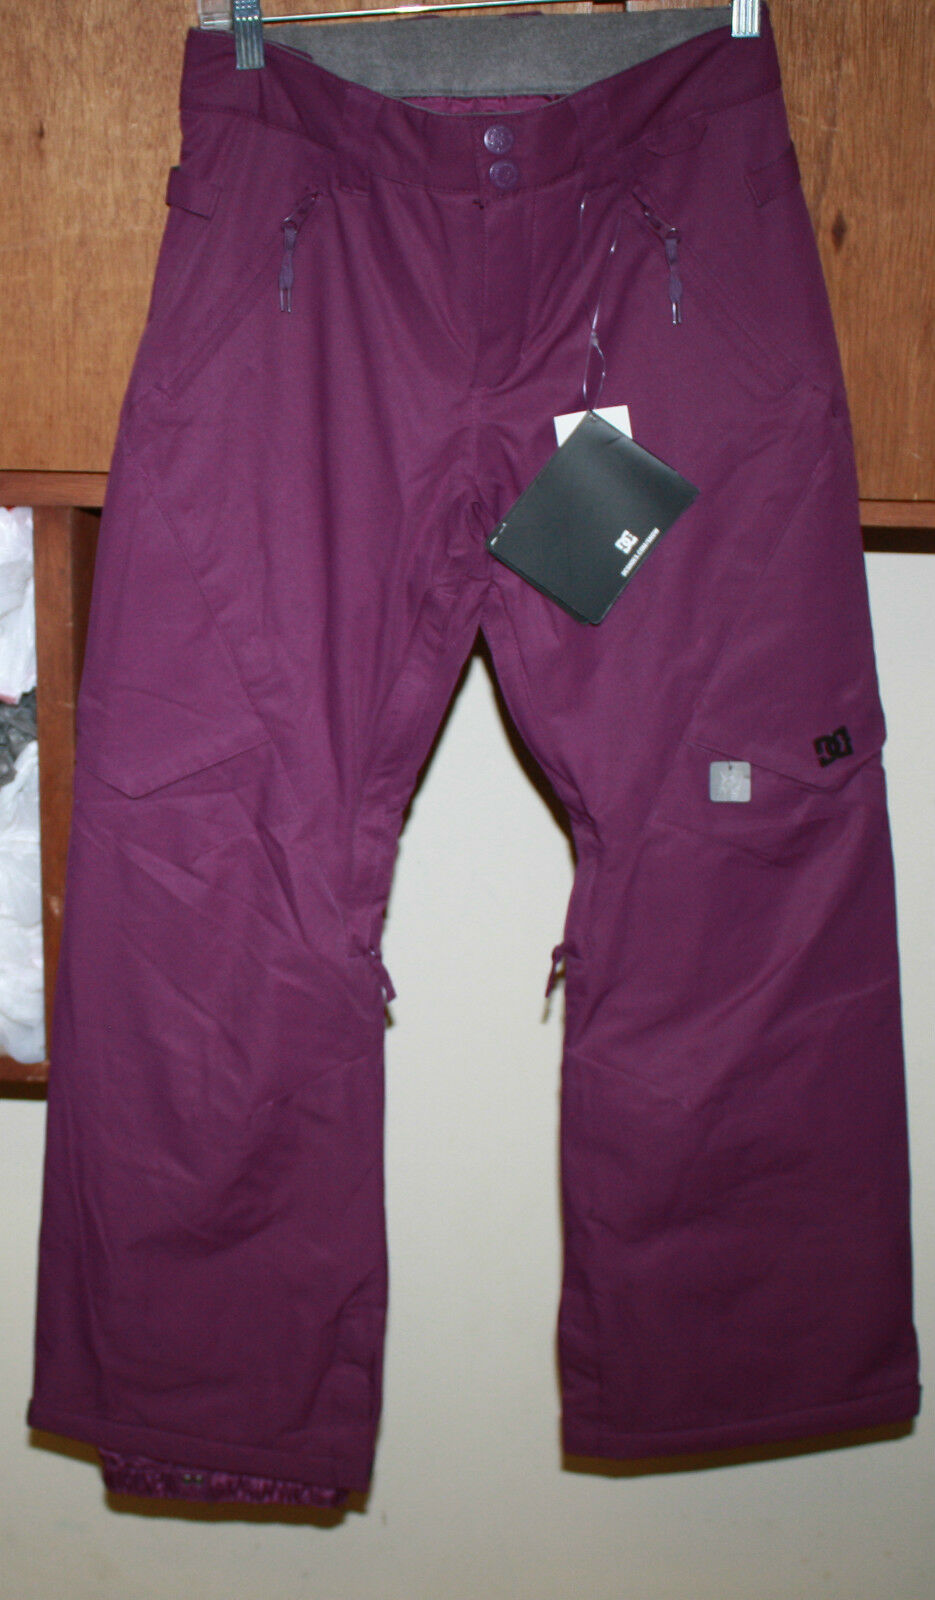 NWT DC ACE 14 KIDS SNOWBOARD PANTS MEDIUM PURPLE  FREE SHIPPING  best price